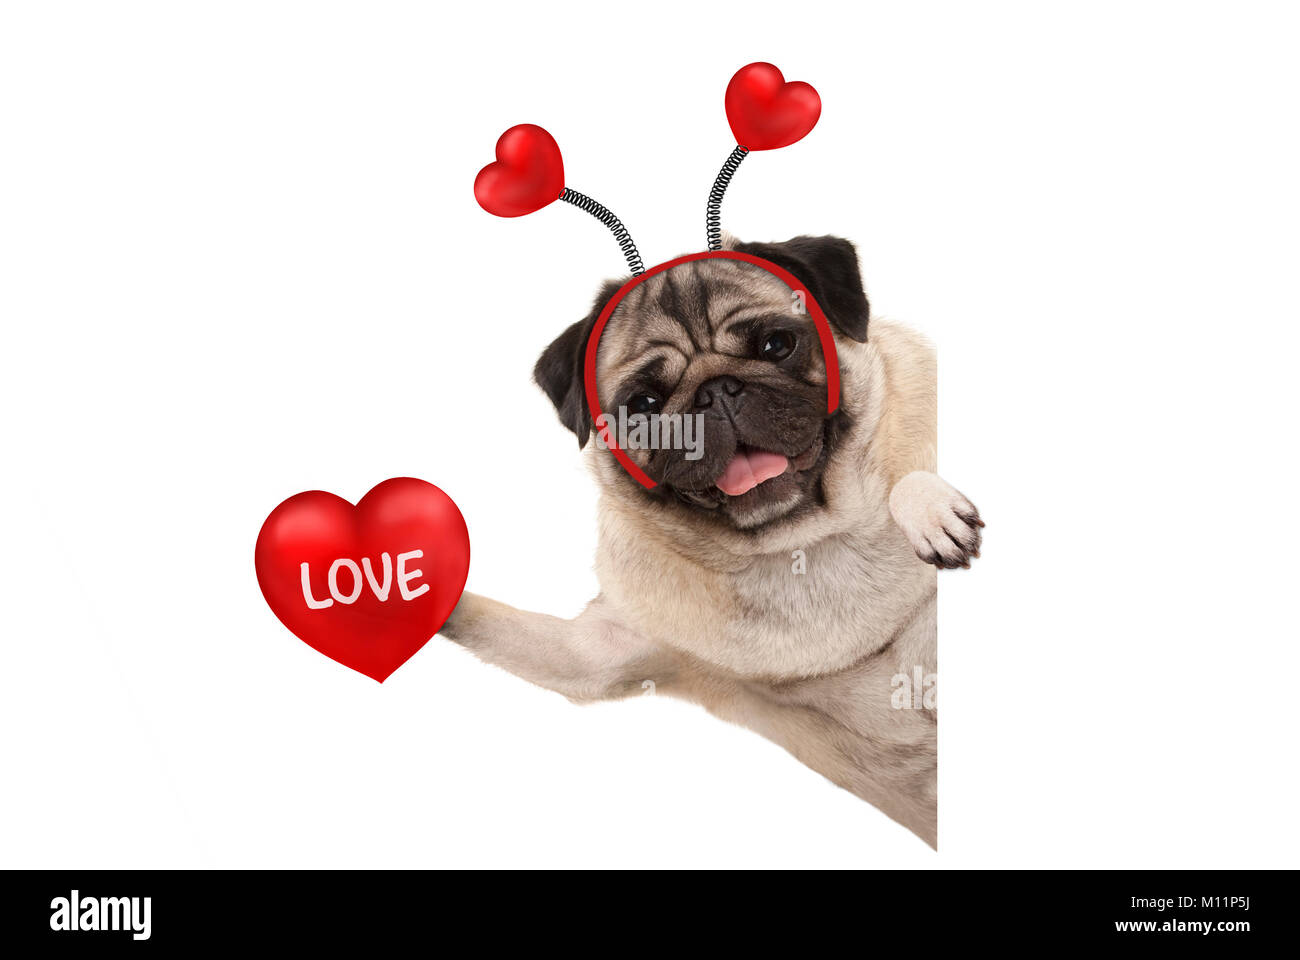 smiling Valentine's day pug dog holding up red heart with text love, isolated on white background - Stock Image